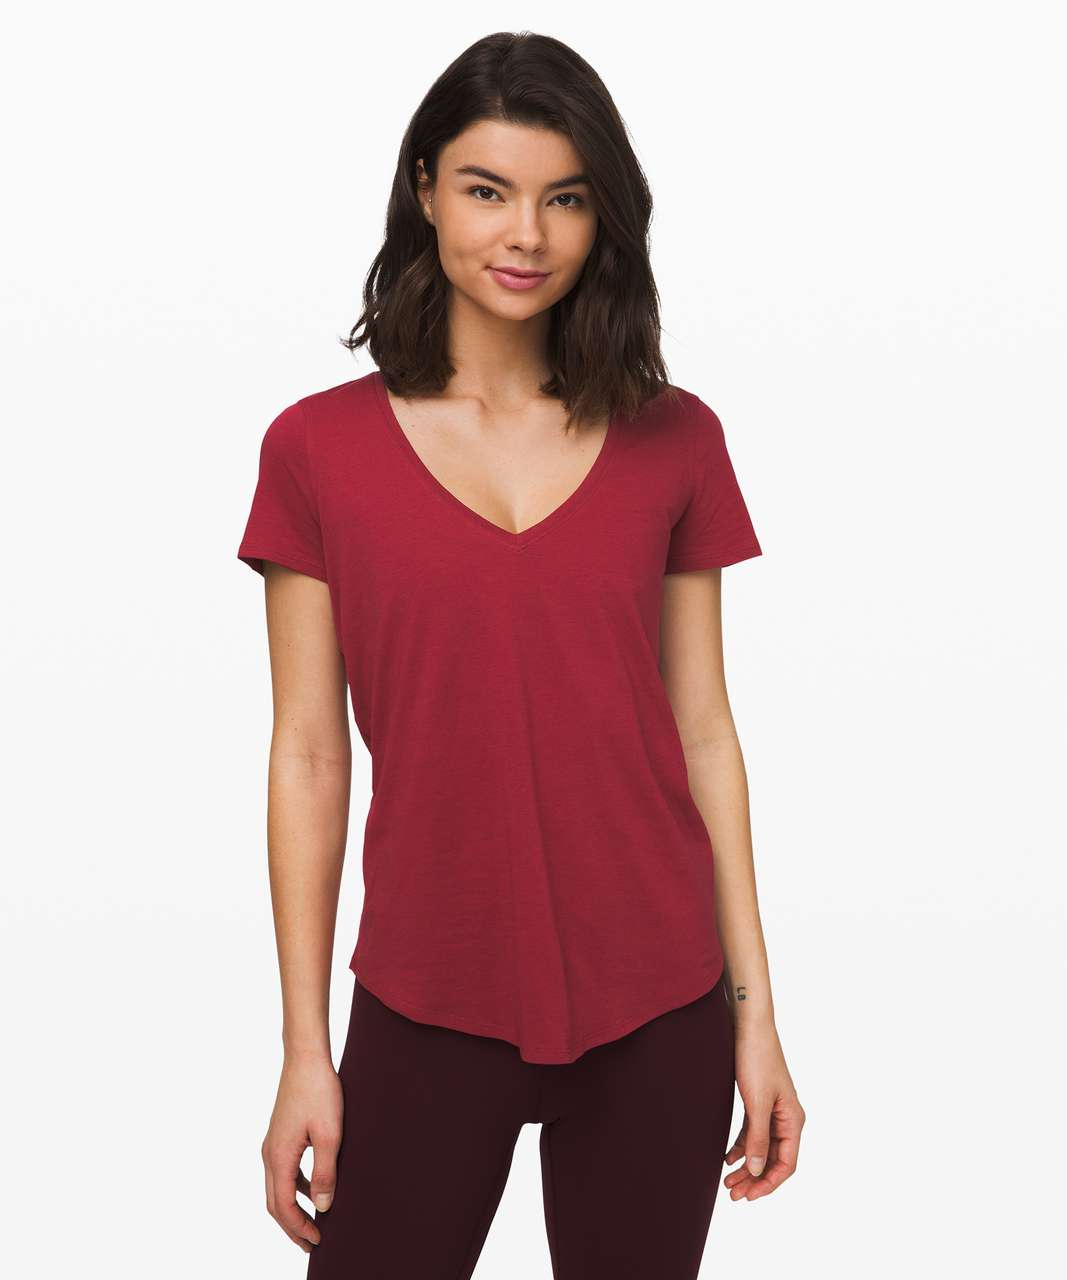 Lululemon Love Tee V - Prep Red